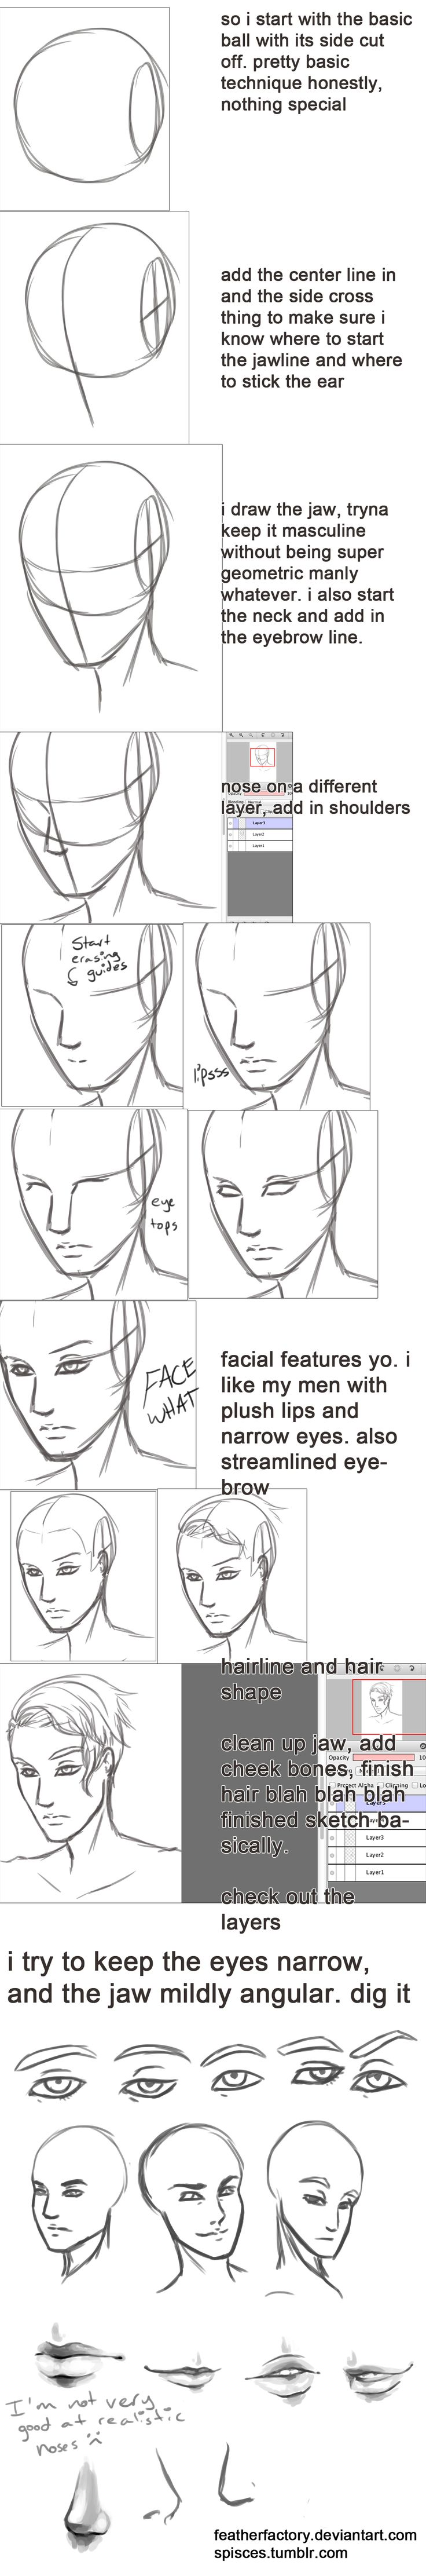 sketchin a pretty dude's face walkthrough thing by FeatherFactory on deviantART